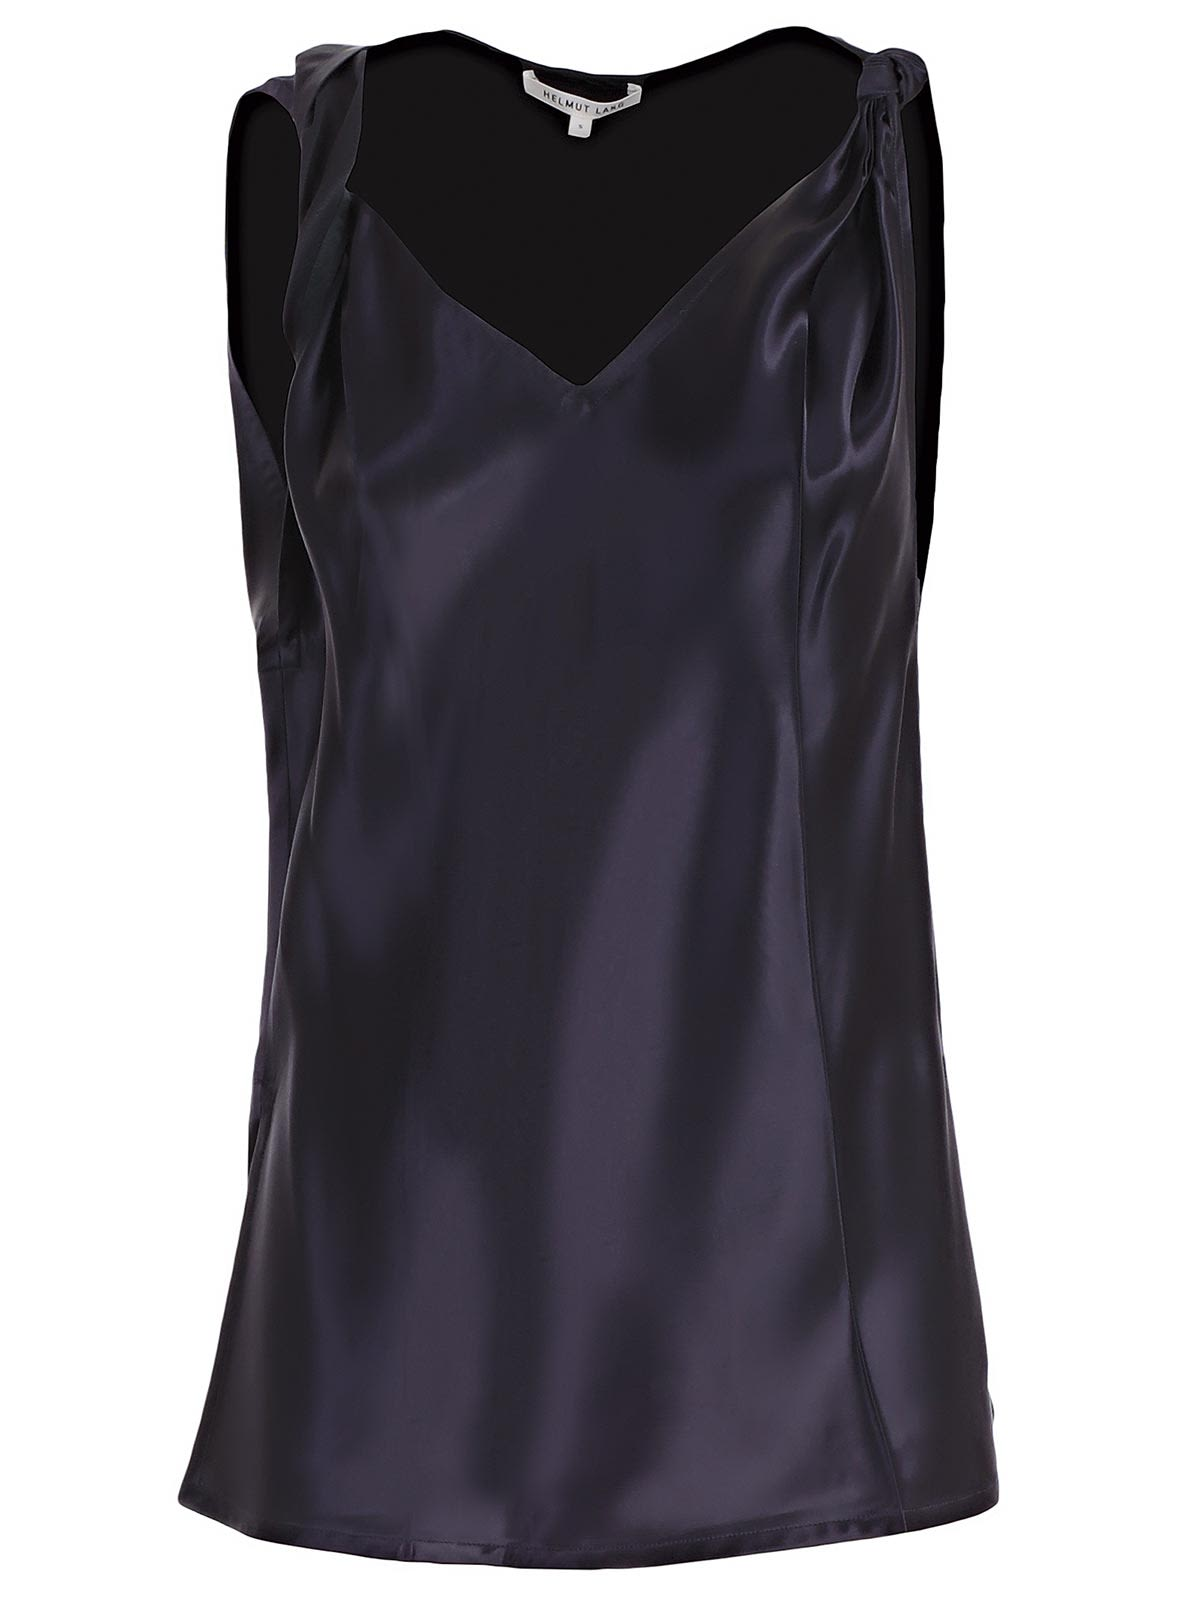 Helmut Lang Knotted Strap Top